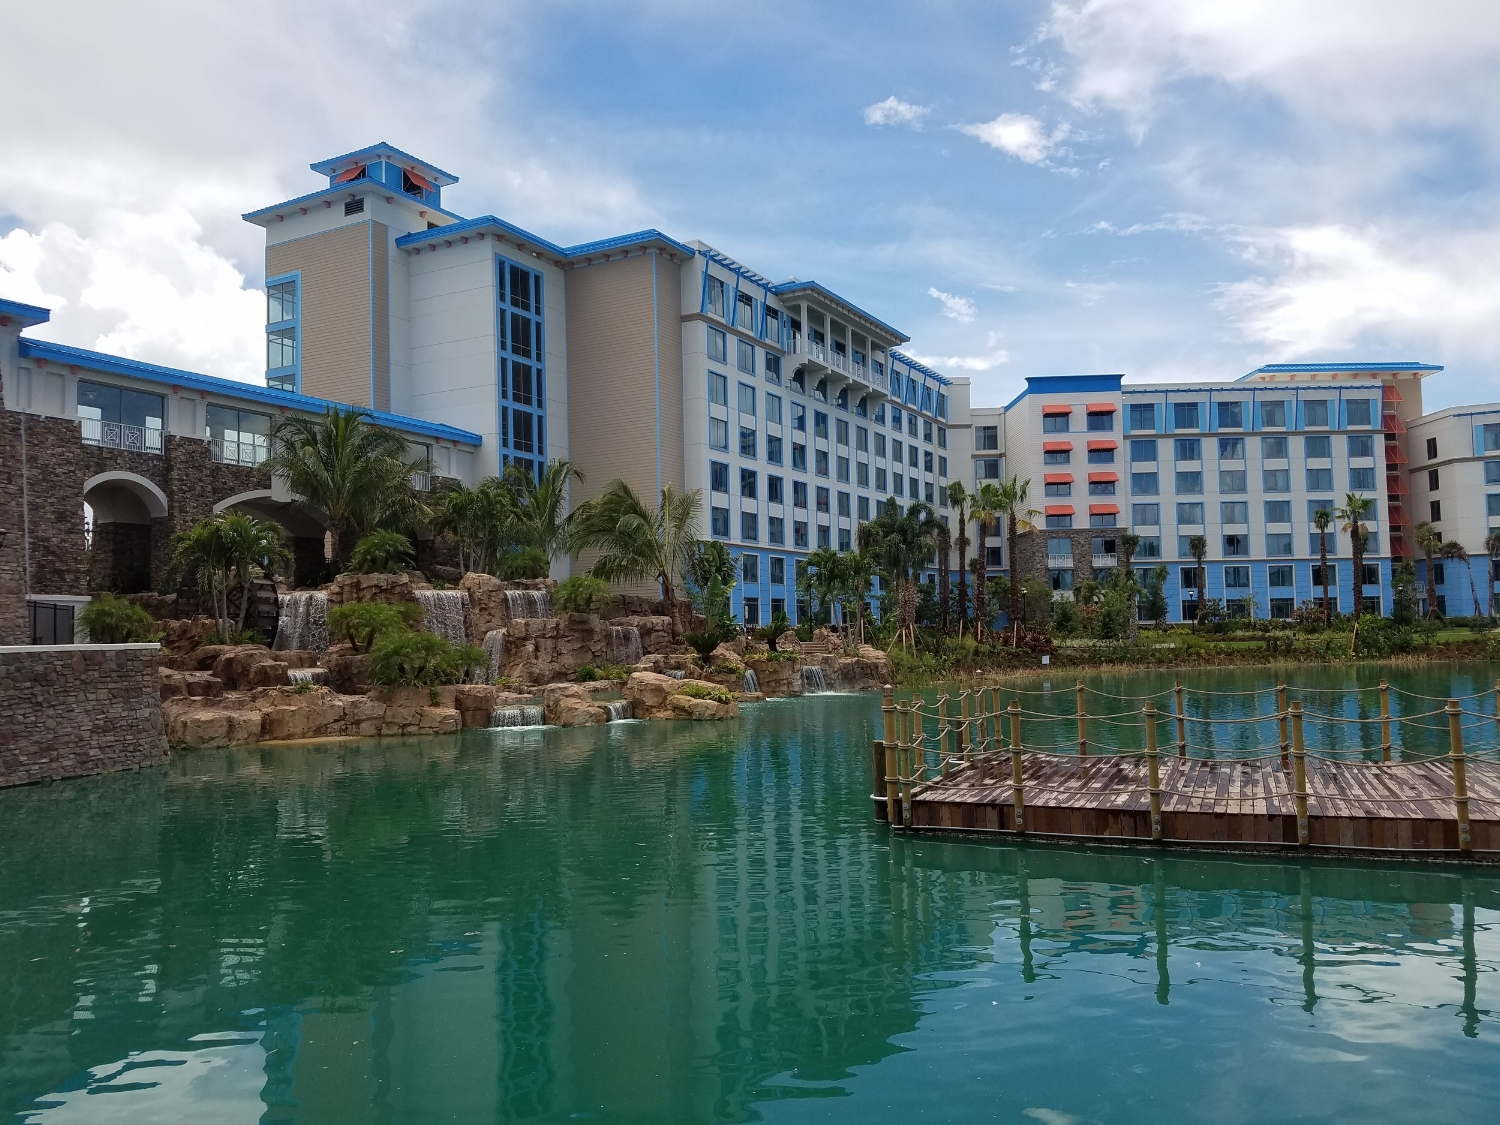 View of Loews Sapphire Falls Resort From the Water Taxi Dock